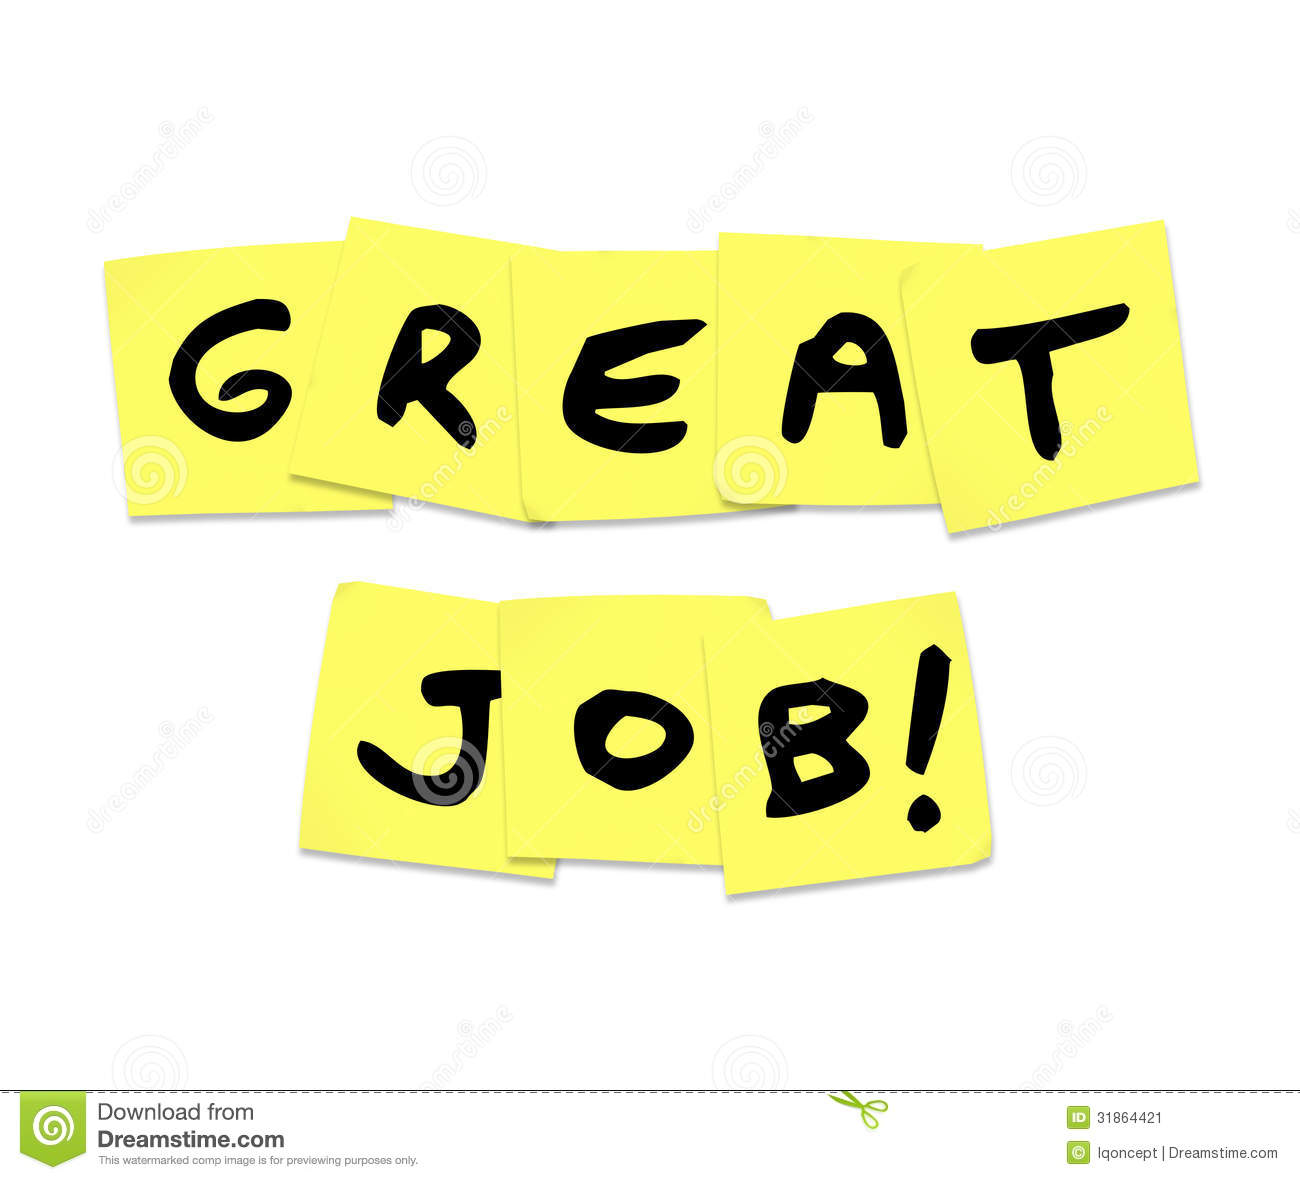 Appreciation Quotes For Good Work Done: Awesome Job Team Quotes. QuotesGram